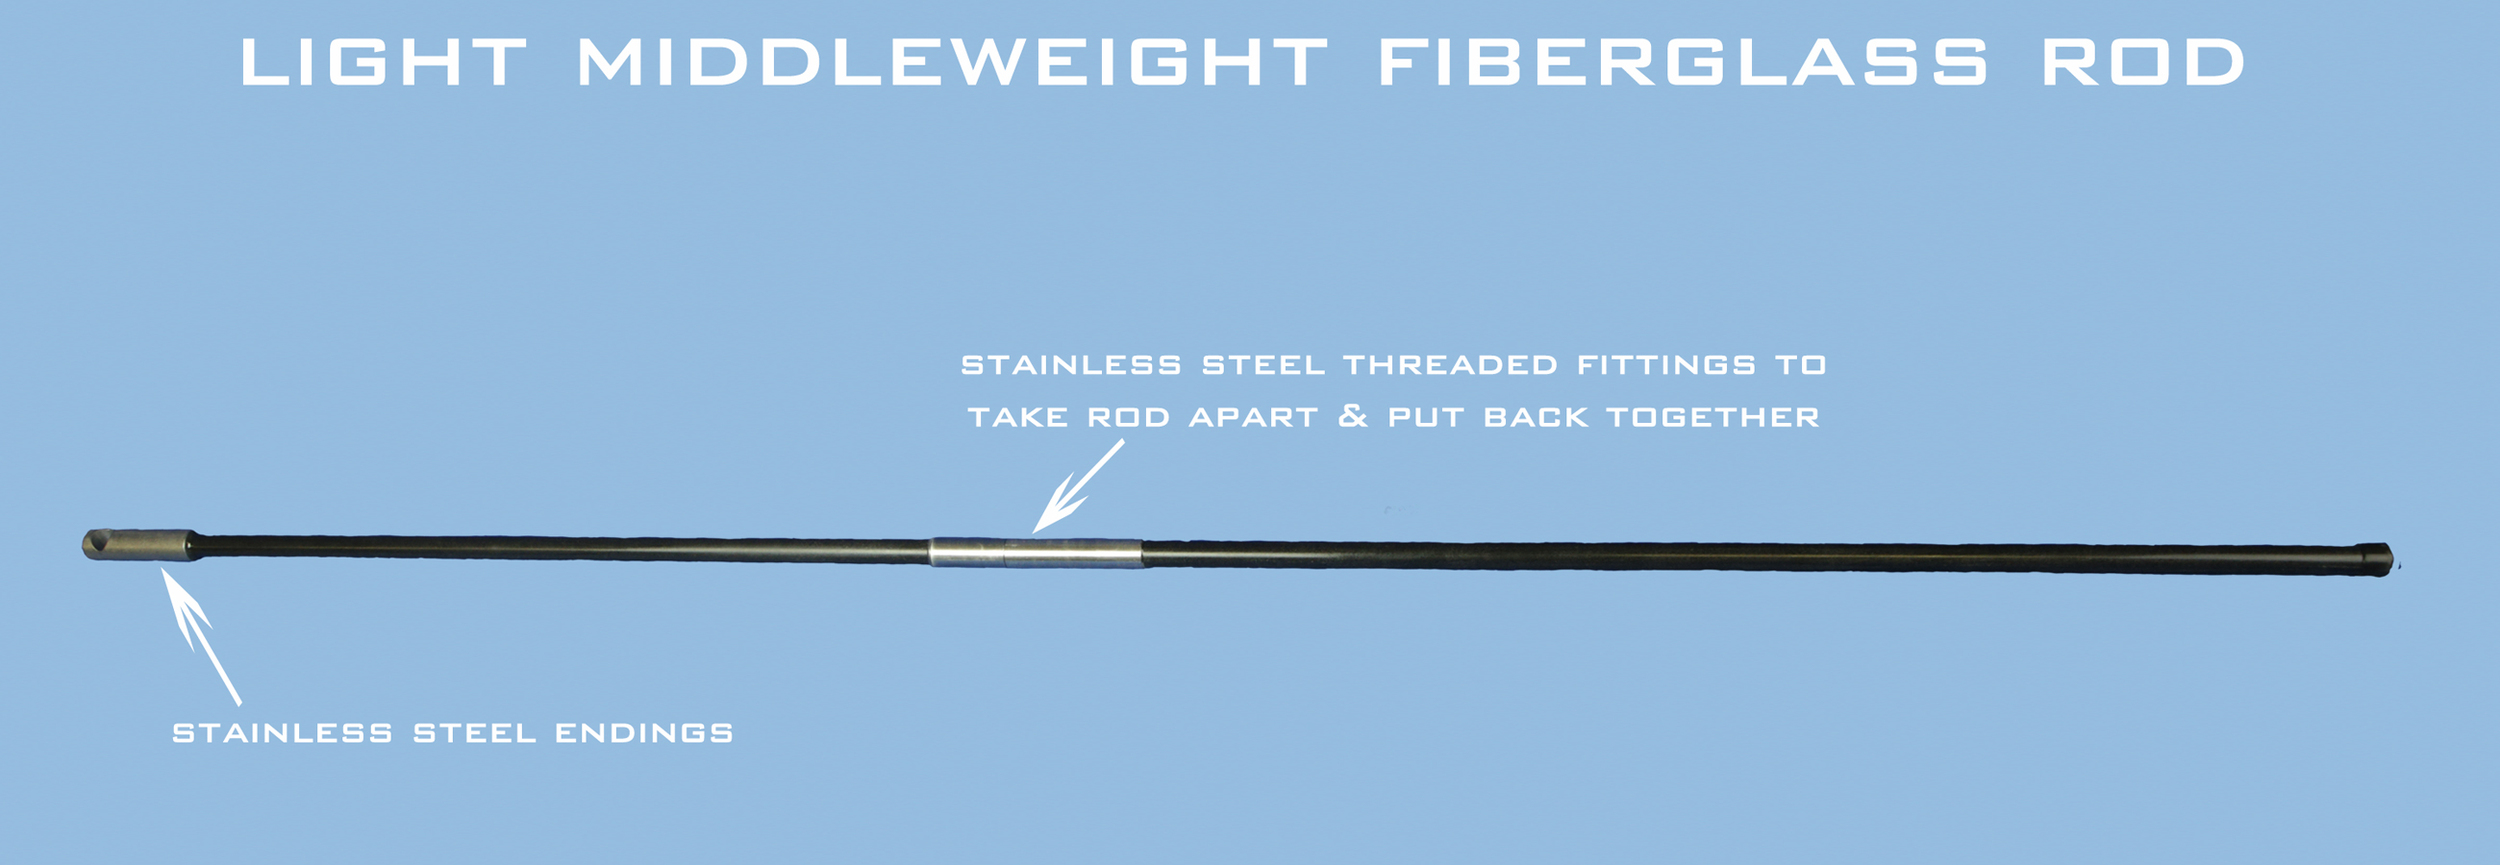 light middleweight rod.jpg